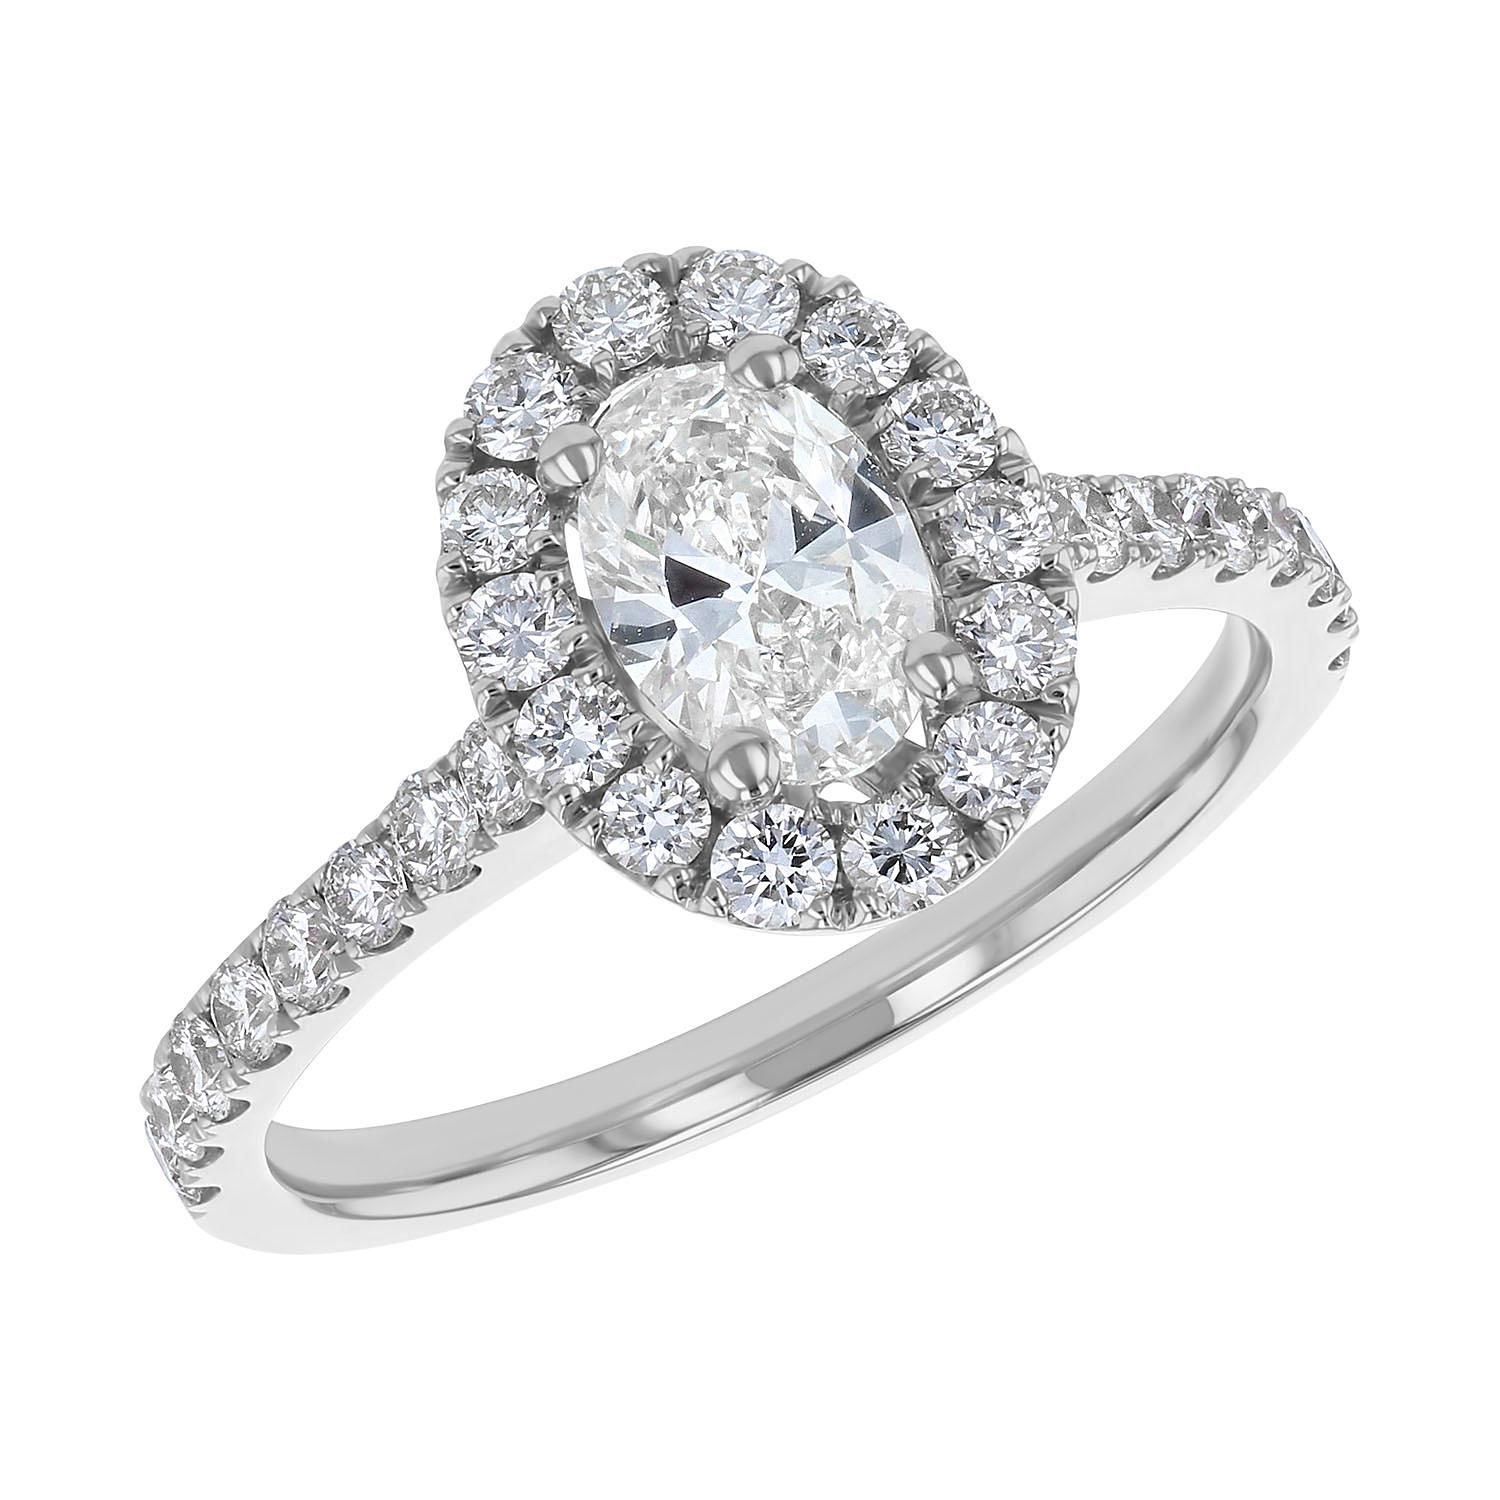 Sam's Club Just Launched the Most Amazing Line of Engagement Rings